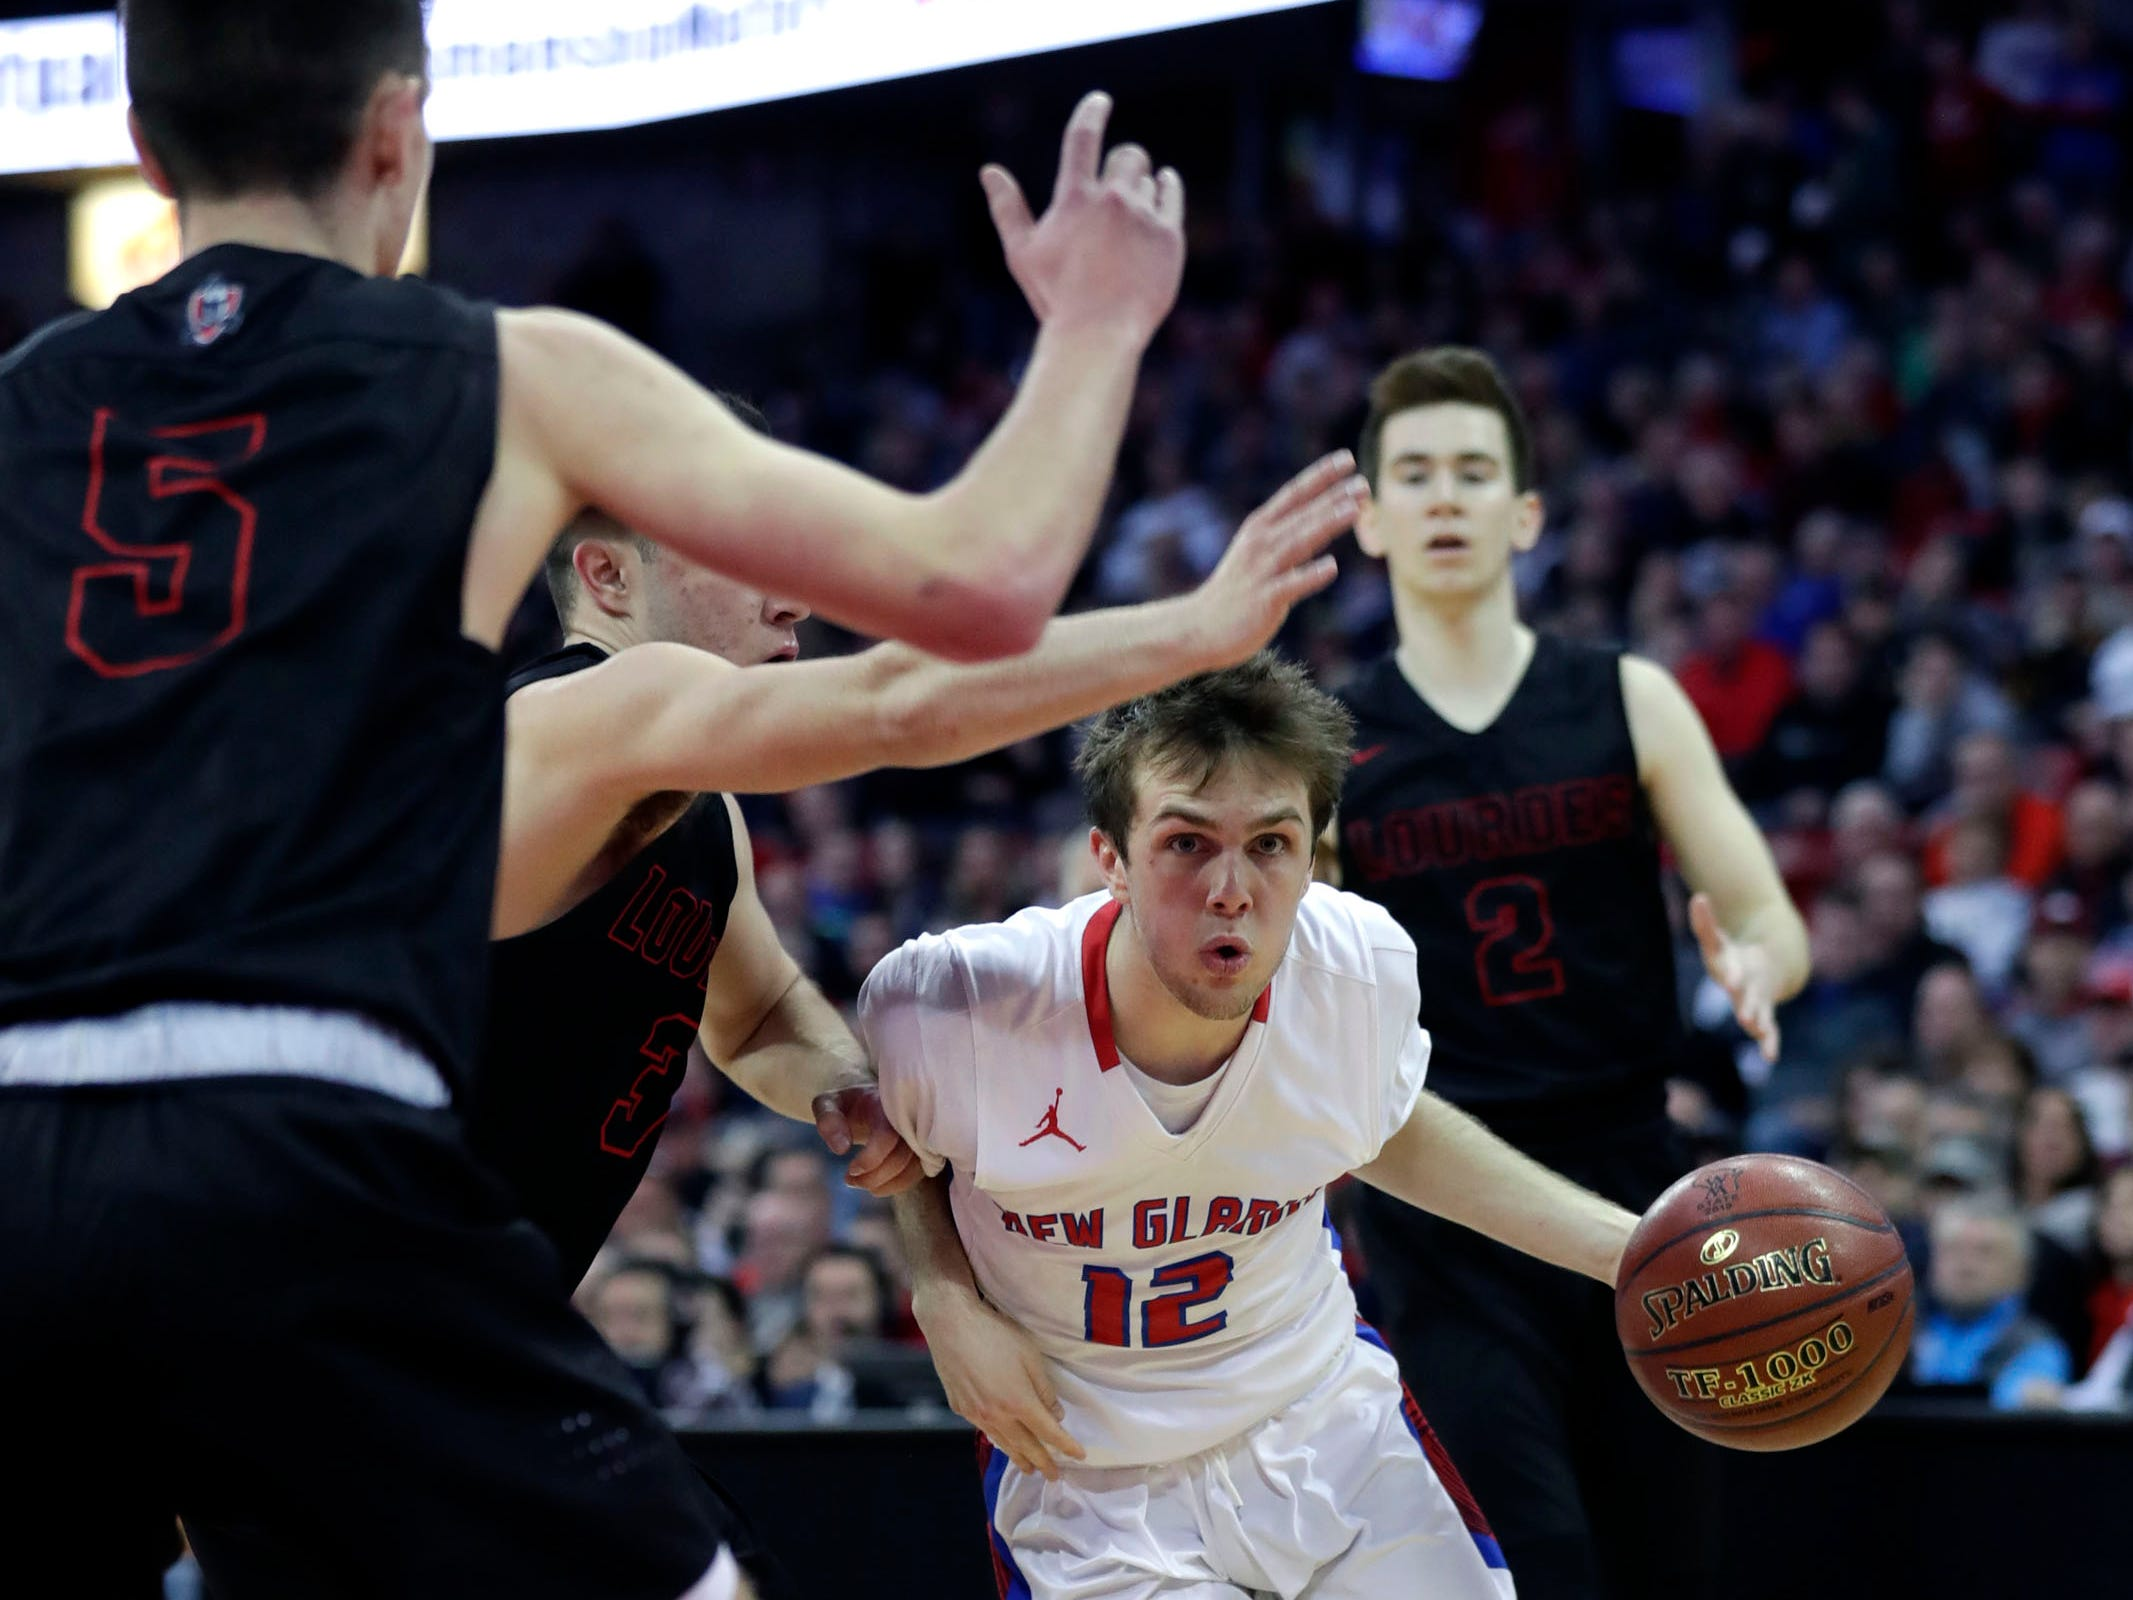 New Glarus's  Jaden Kreklow drives in for two of his game-high 22 points against Oshkosh Lourdes in the WIAA Division 4 title game.